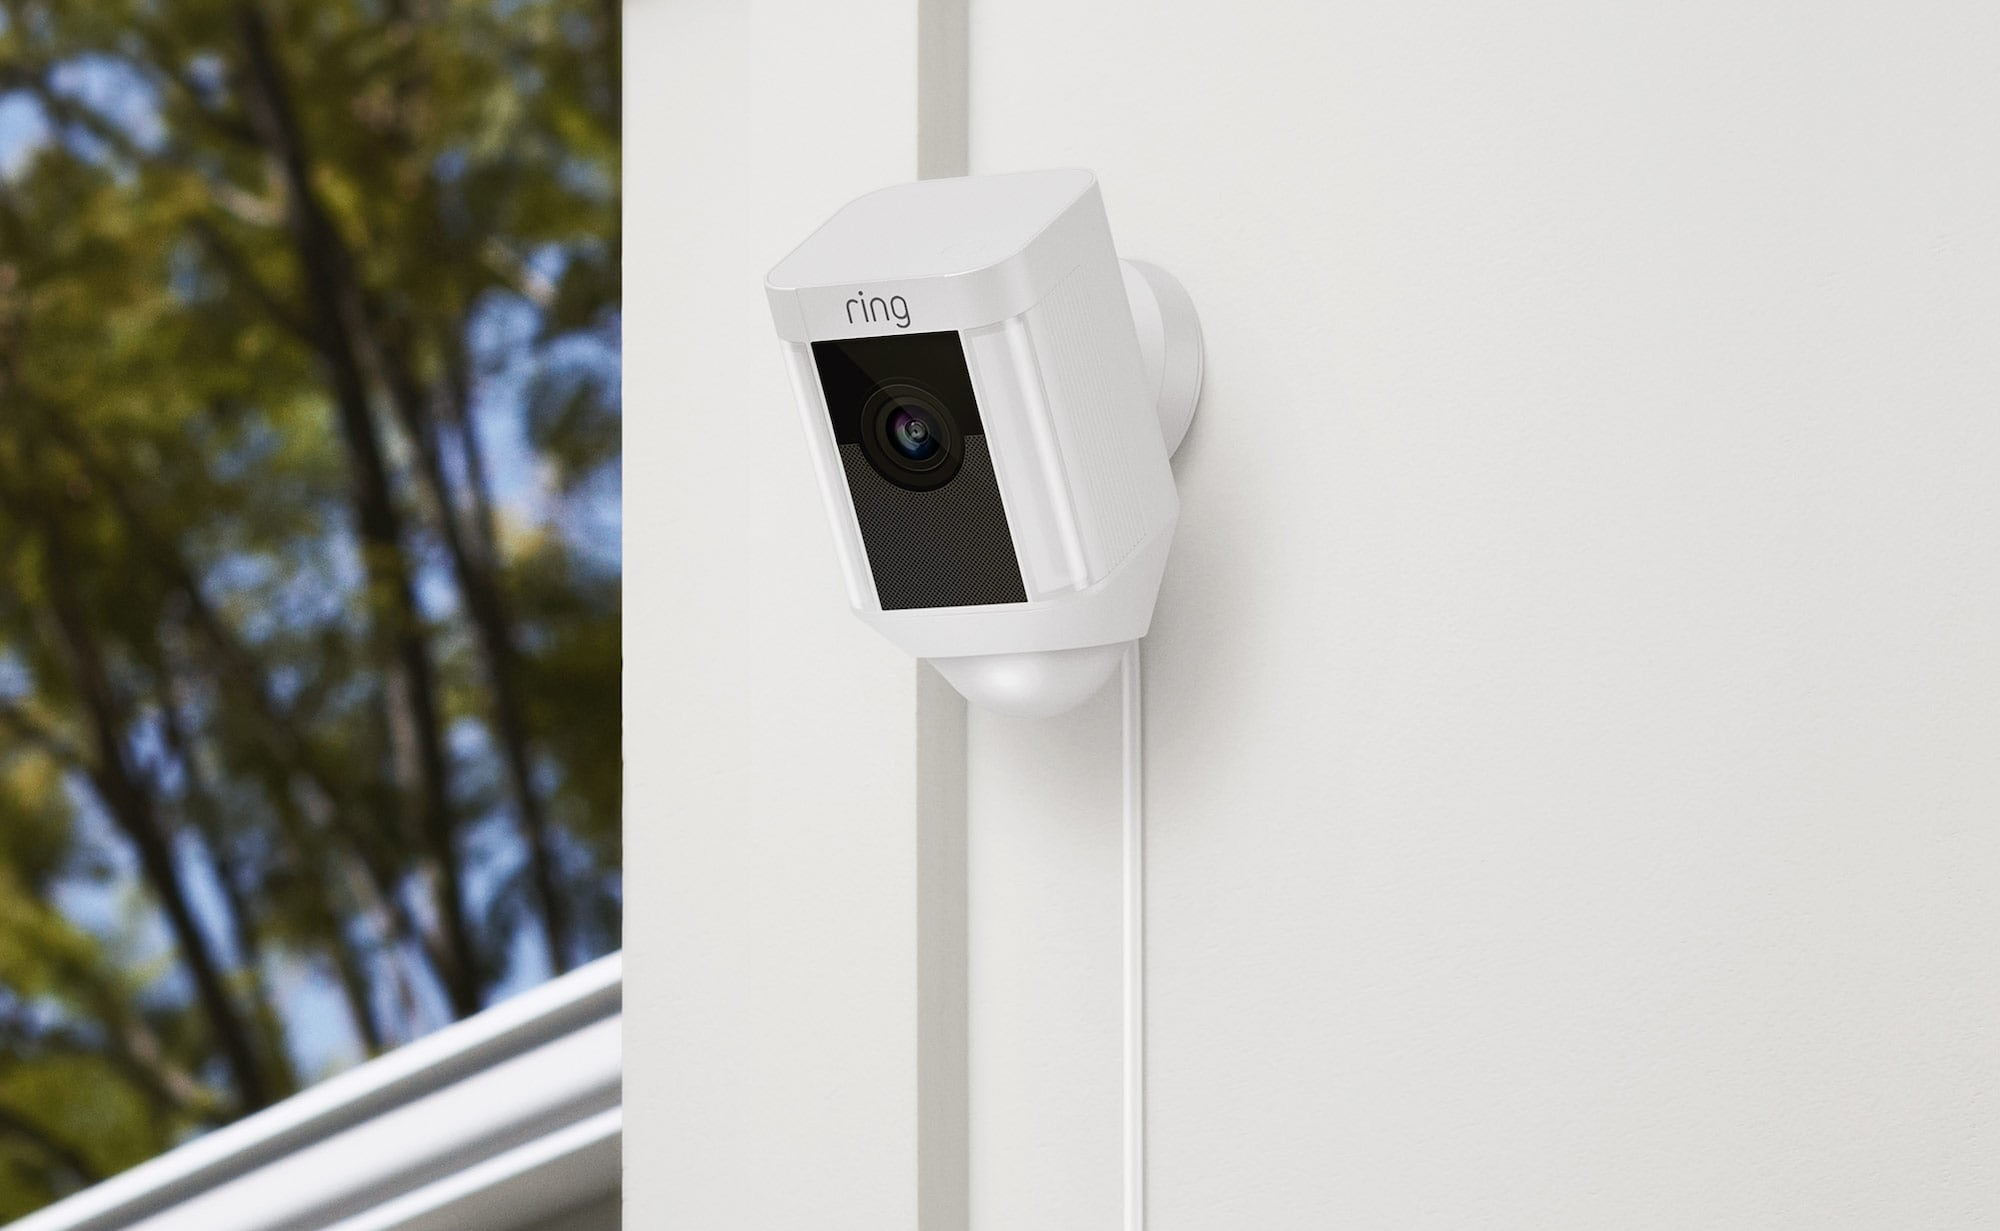 One of the wired and battery powered cameras is mounted on an exterior wall.